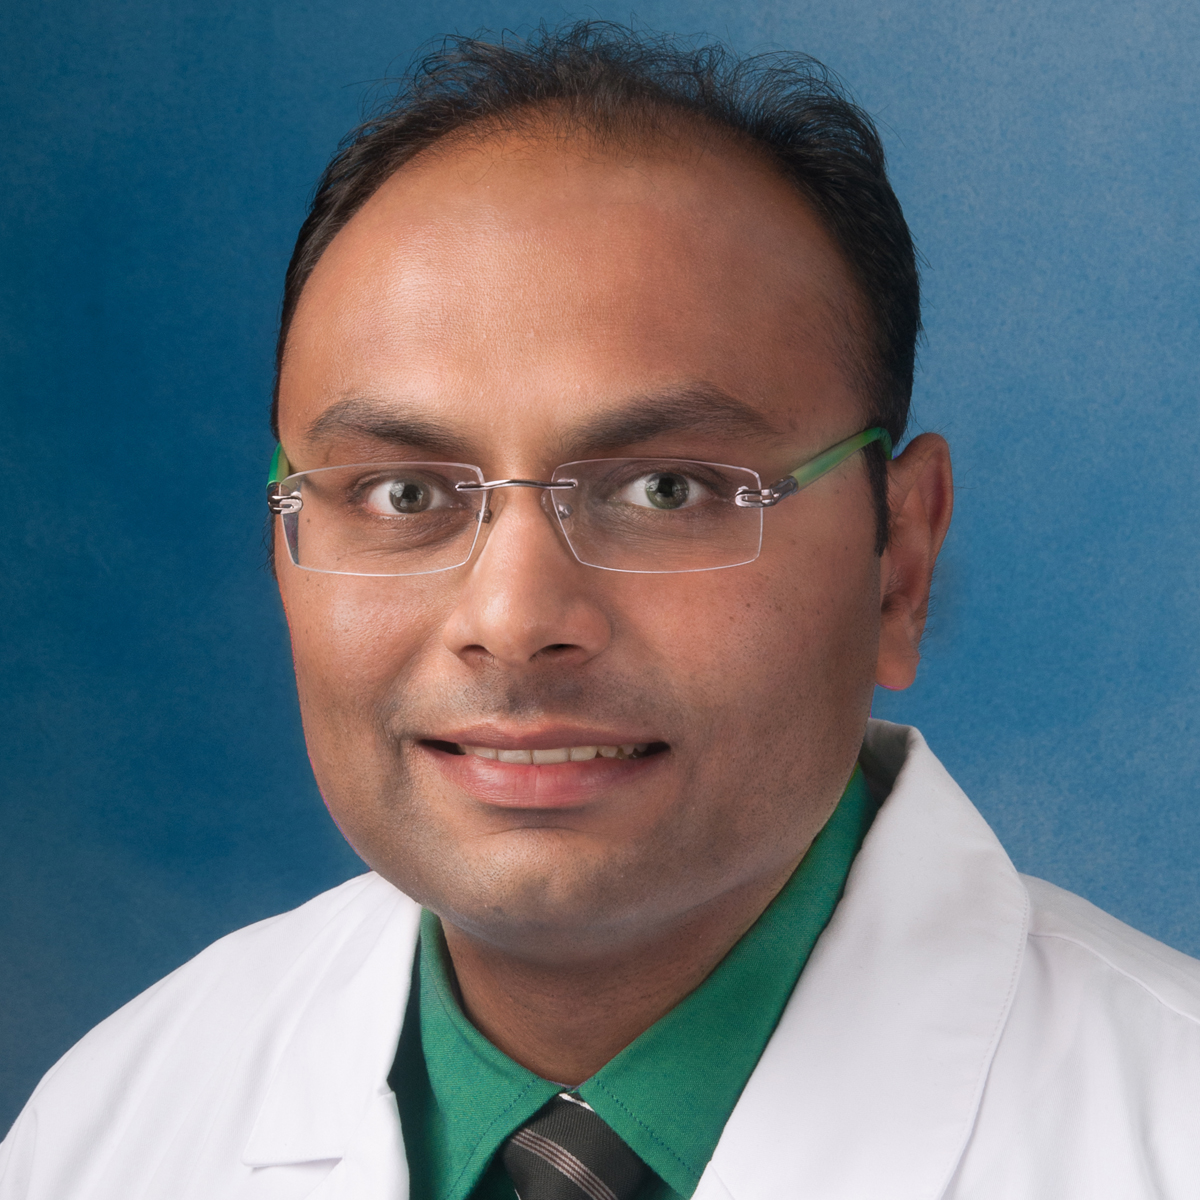 Jignesh Y. Sheth, M.D.